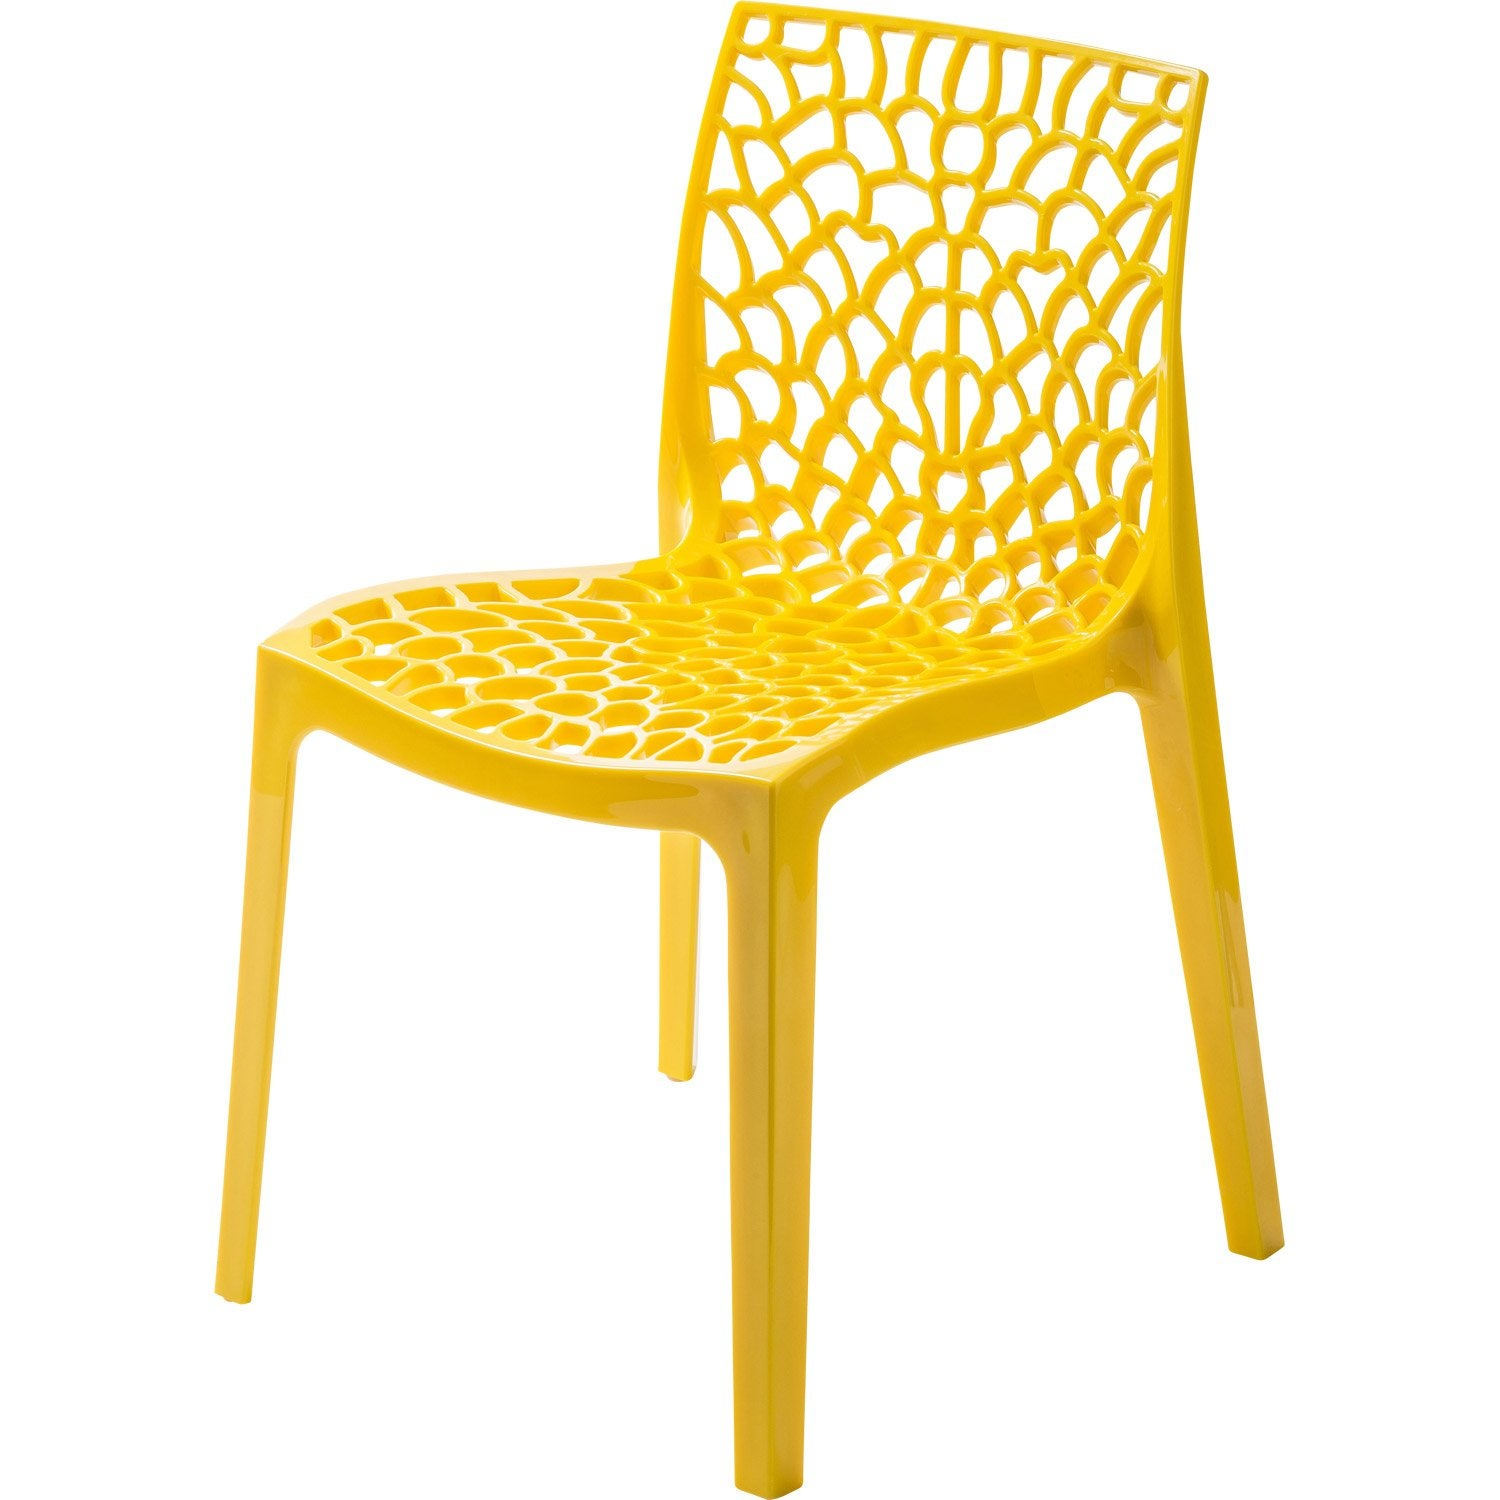 Chaise de jardin en r sine grafik jaune leroy merlin for Chaise jaune design